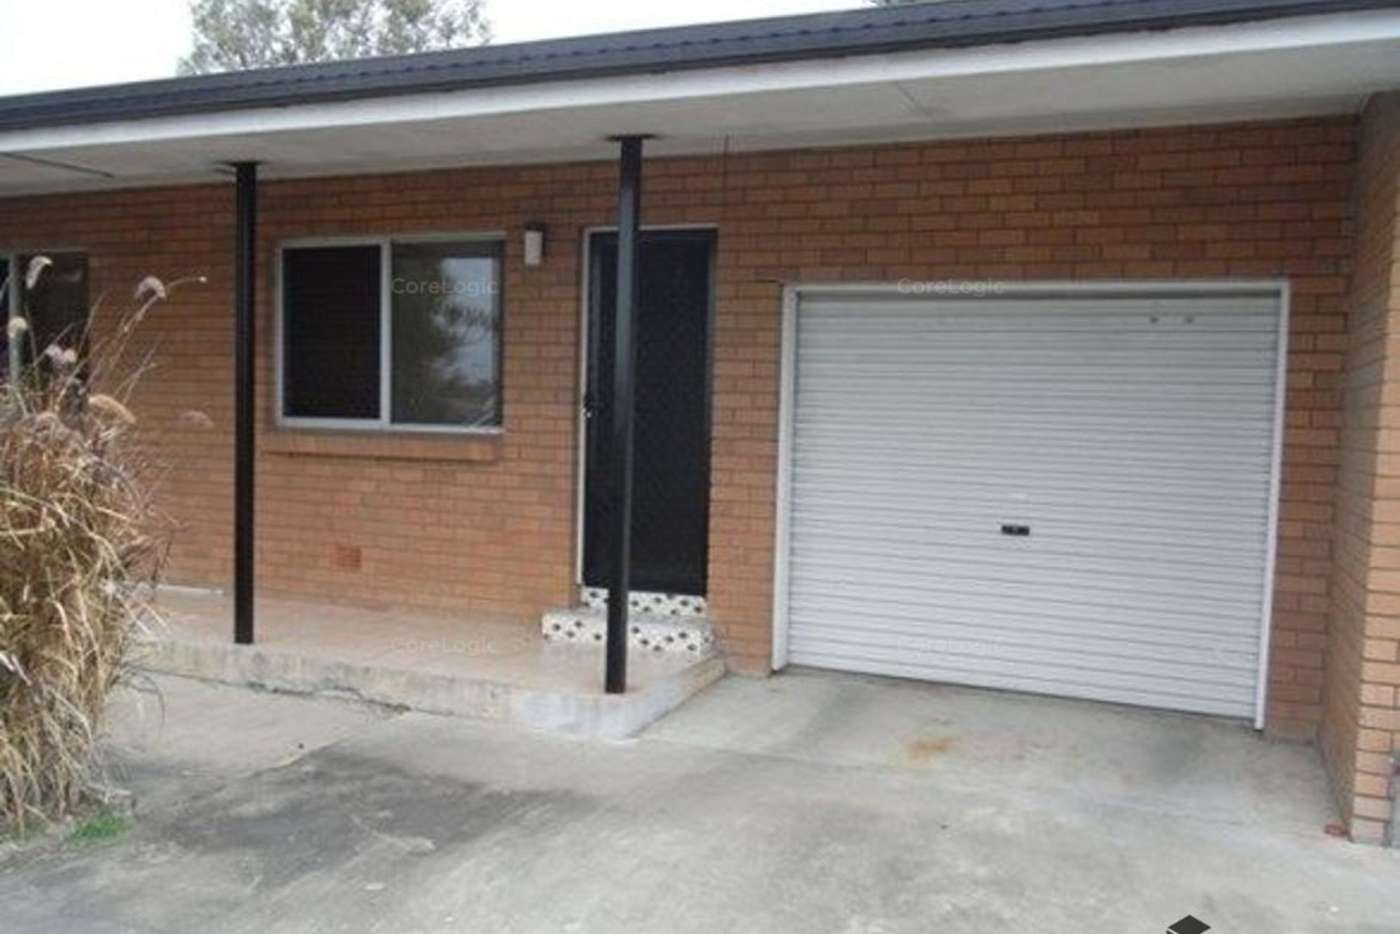 Main view of Homely house listing, 1/73 Paradise Street, South Mackay QLD 4740